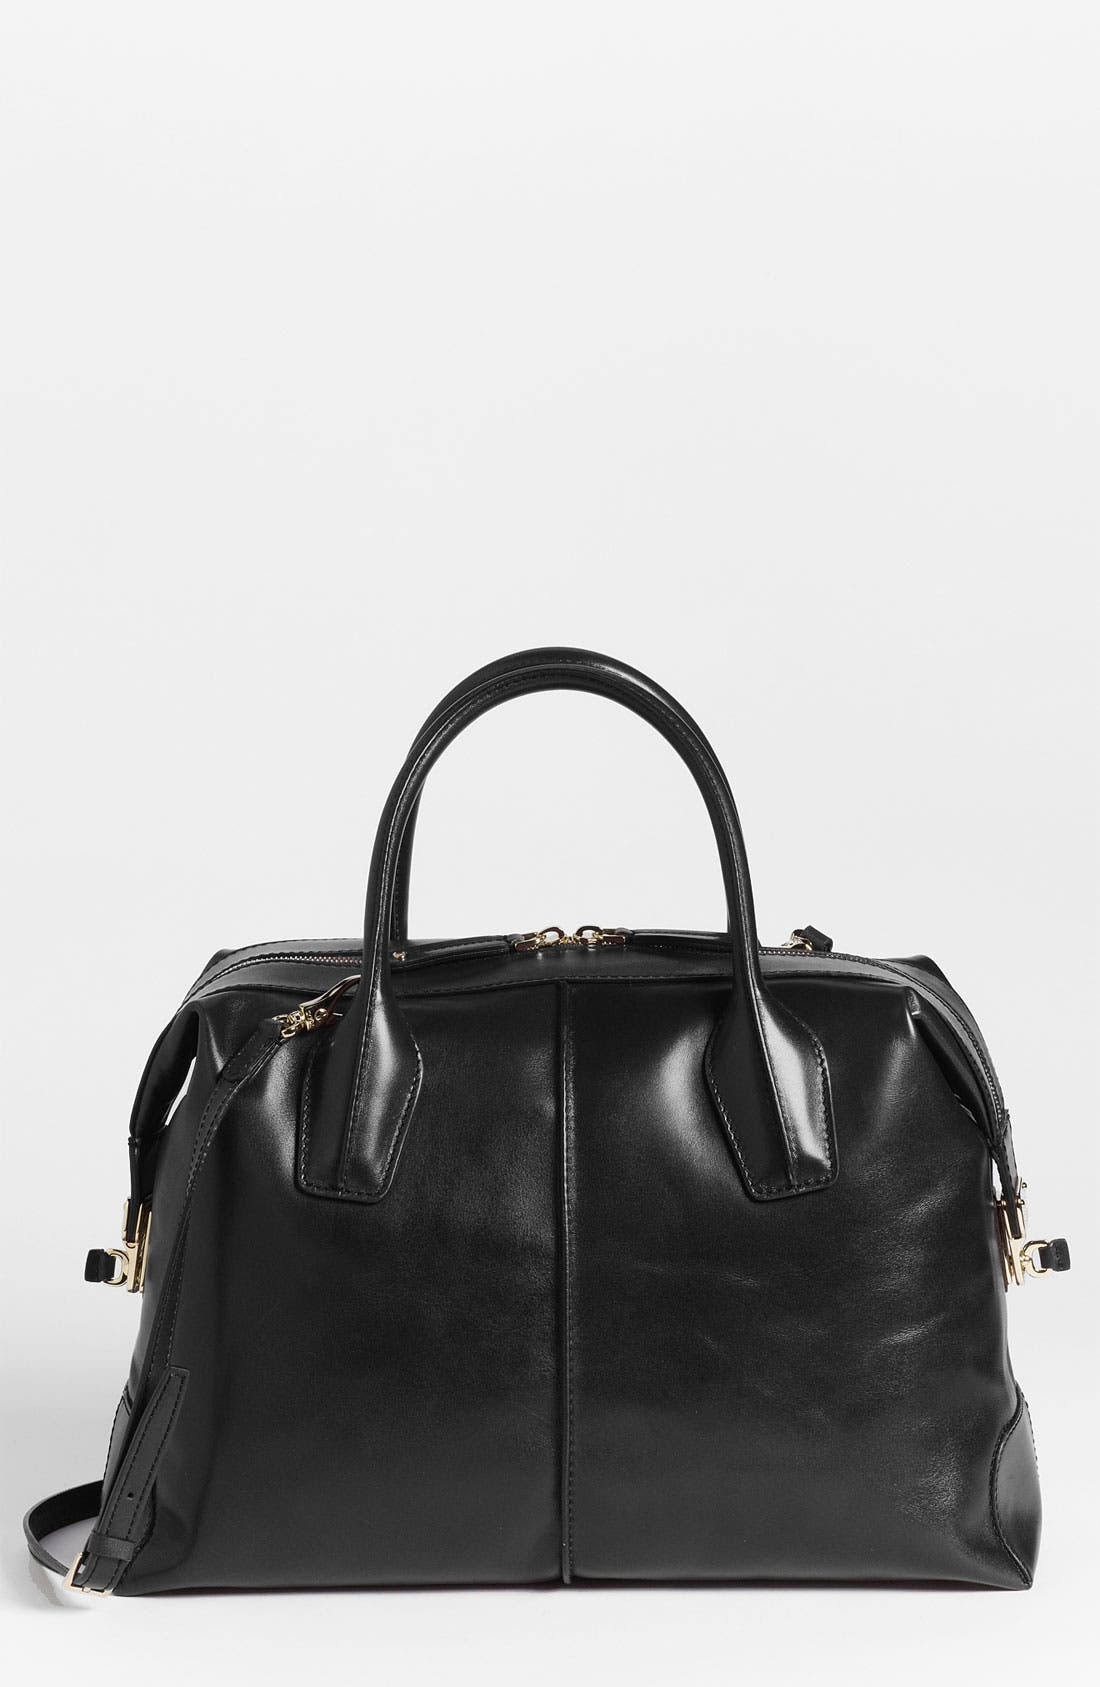 Alternate Image 1 Selected - Tod's 'D-Styling - Medium' Leather Satchel